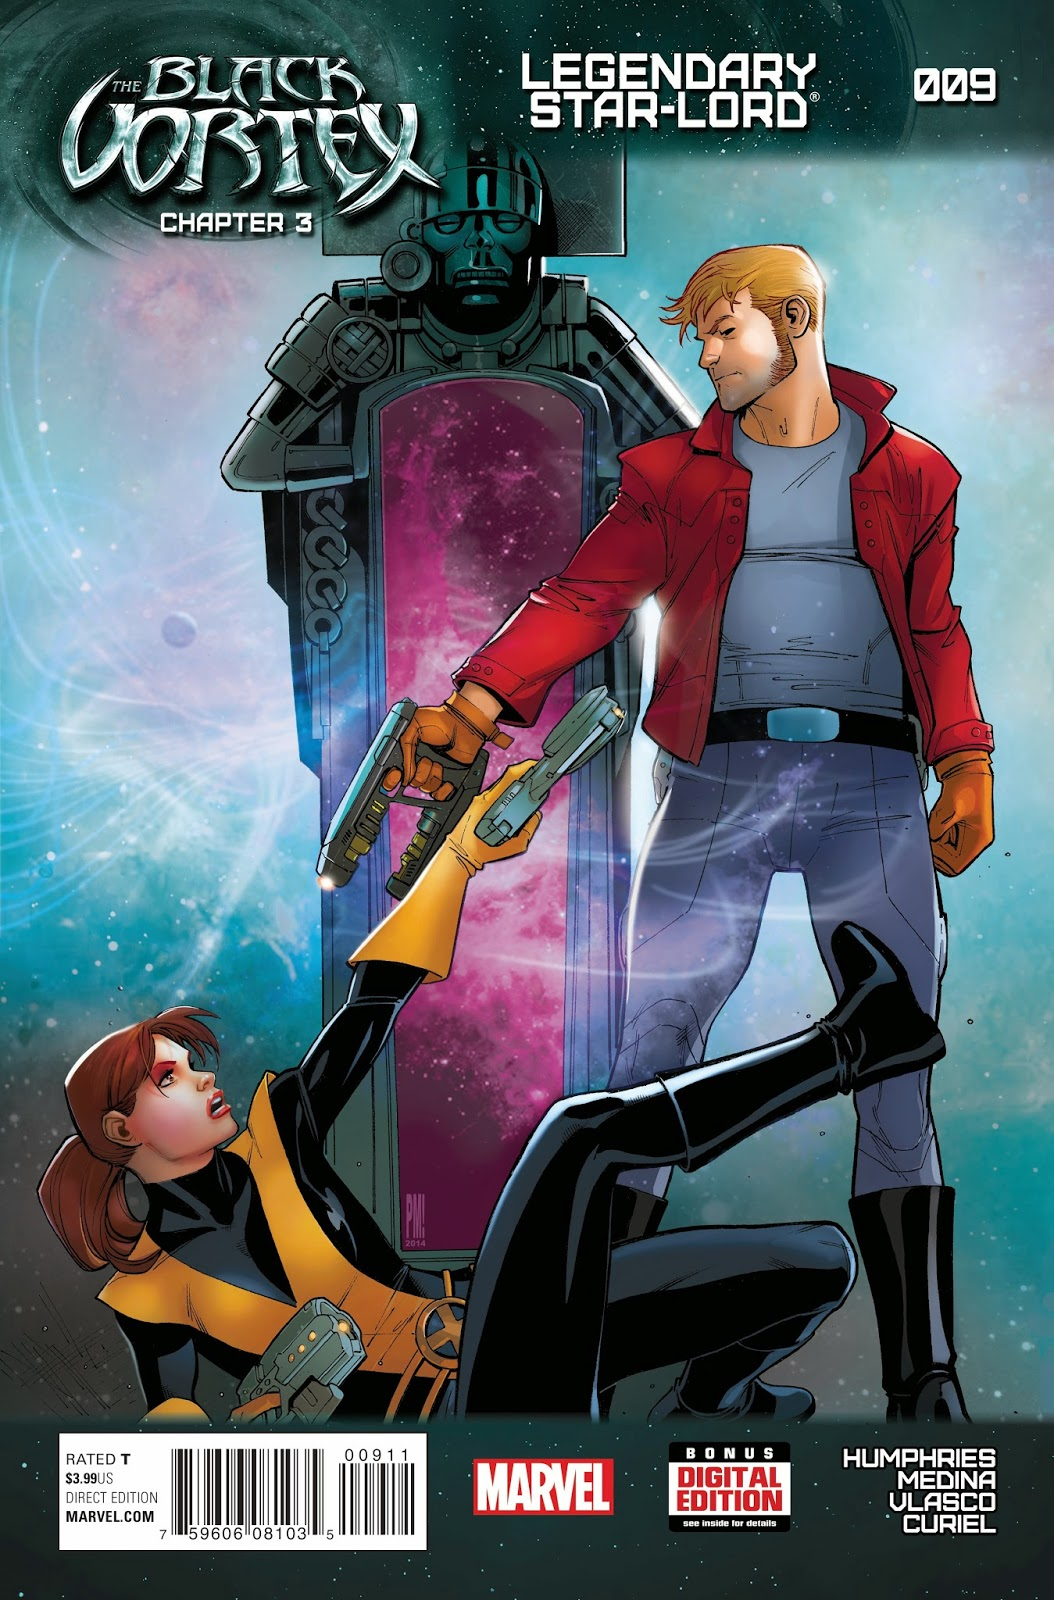 Kitty Pryde and Peter Quill face off